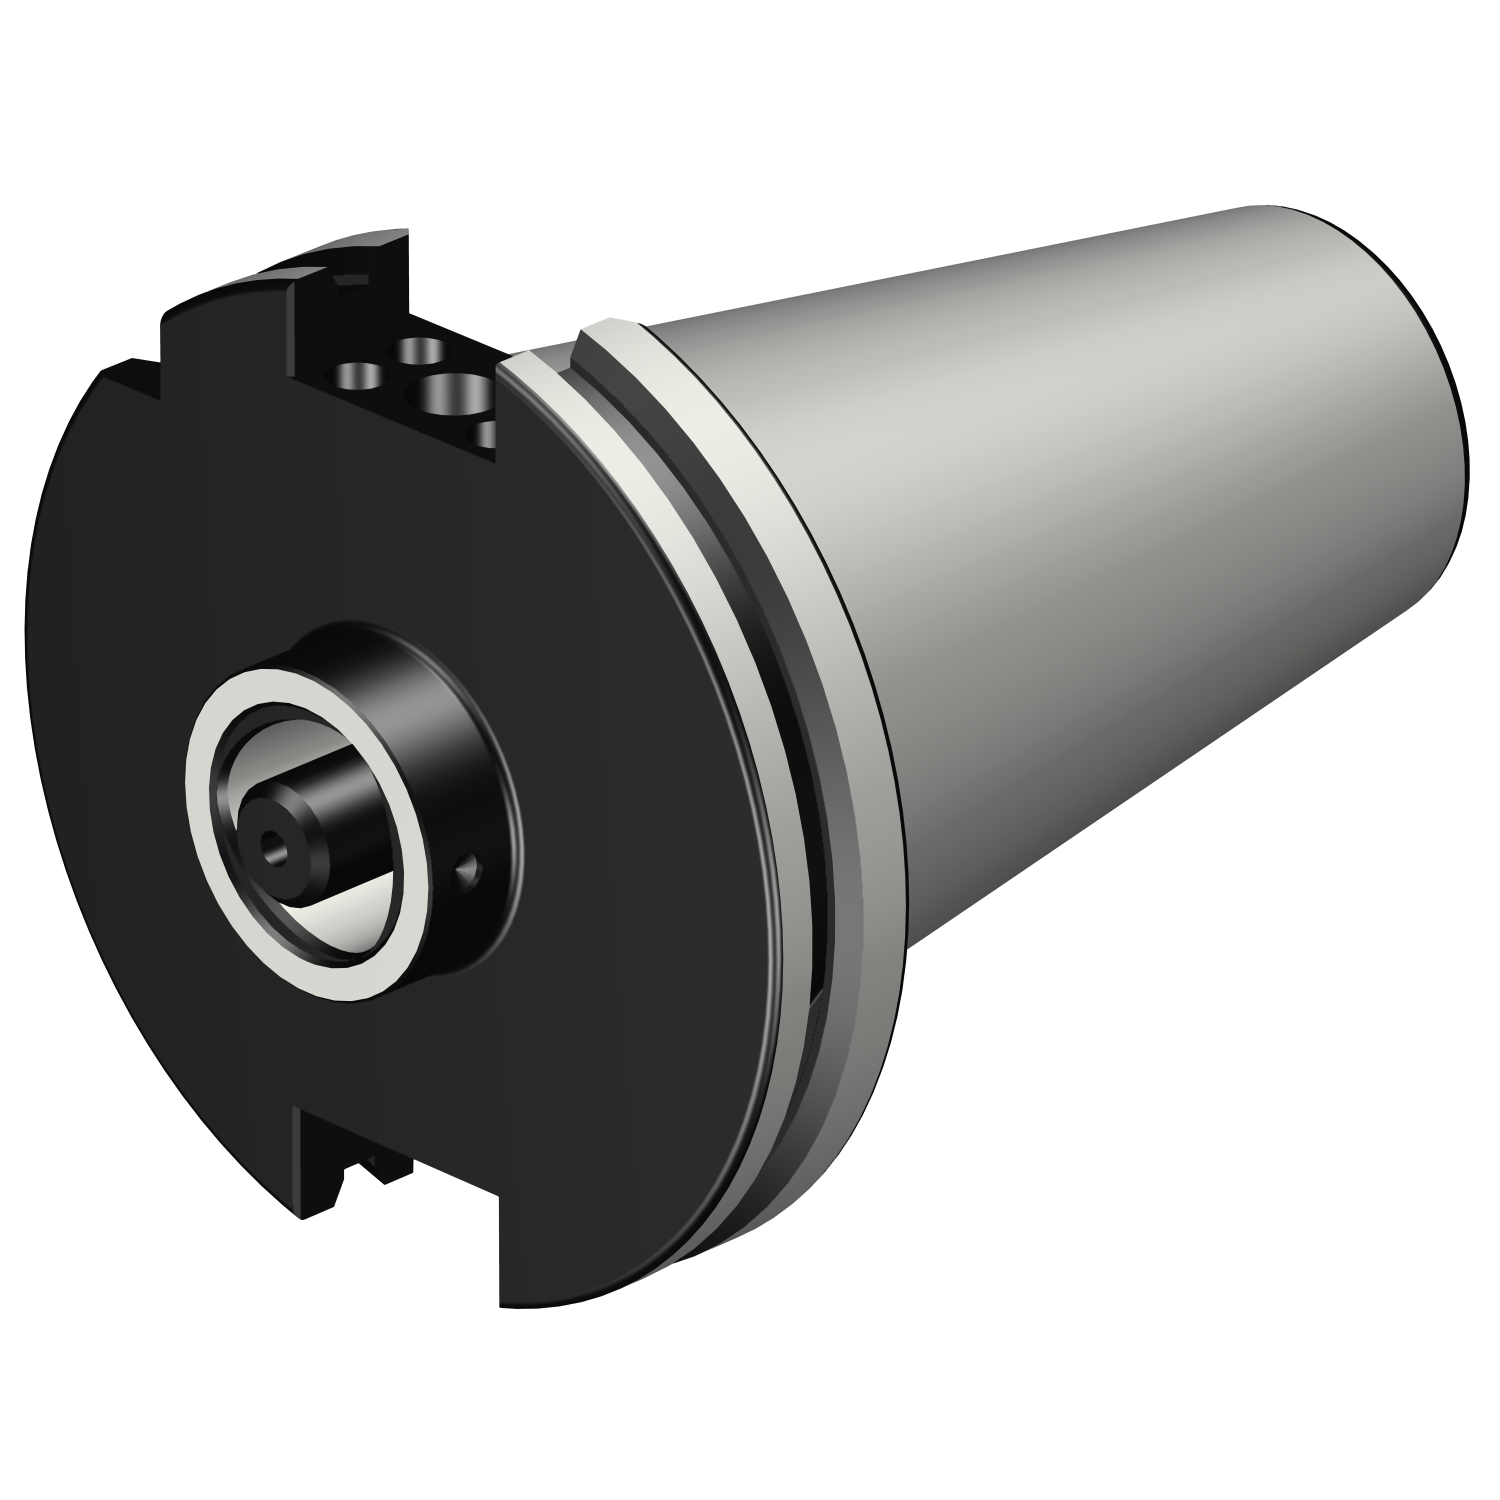 C3-390.540-50 030A - Cross System, Extension & Reducer Adapters